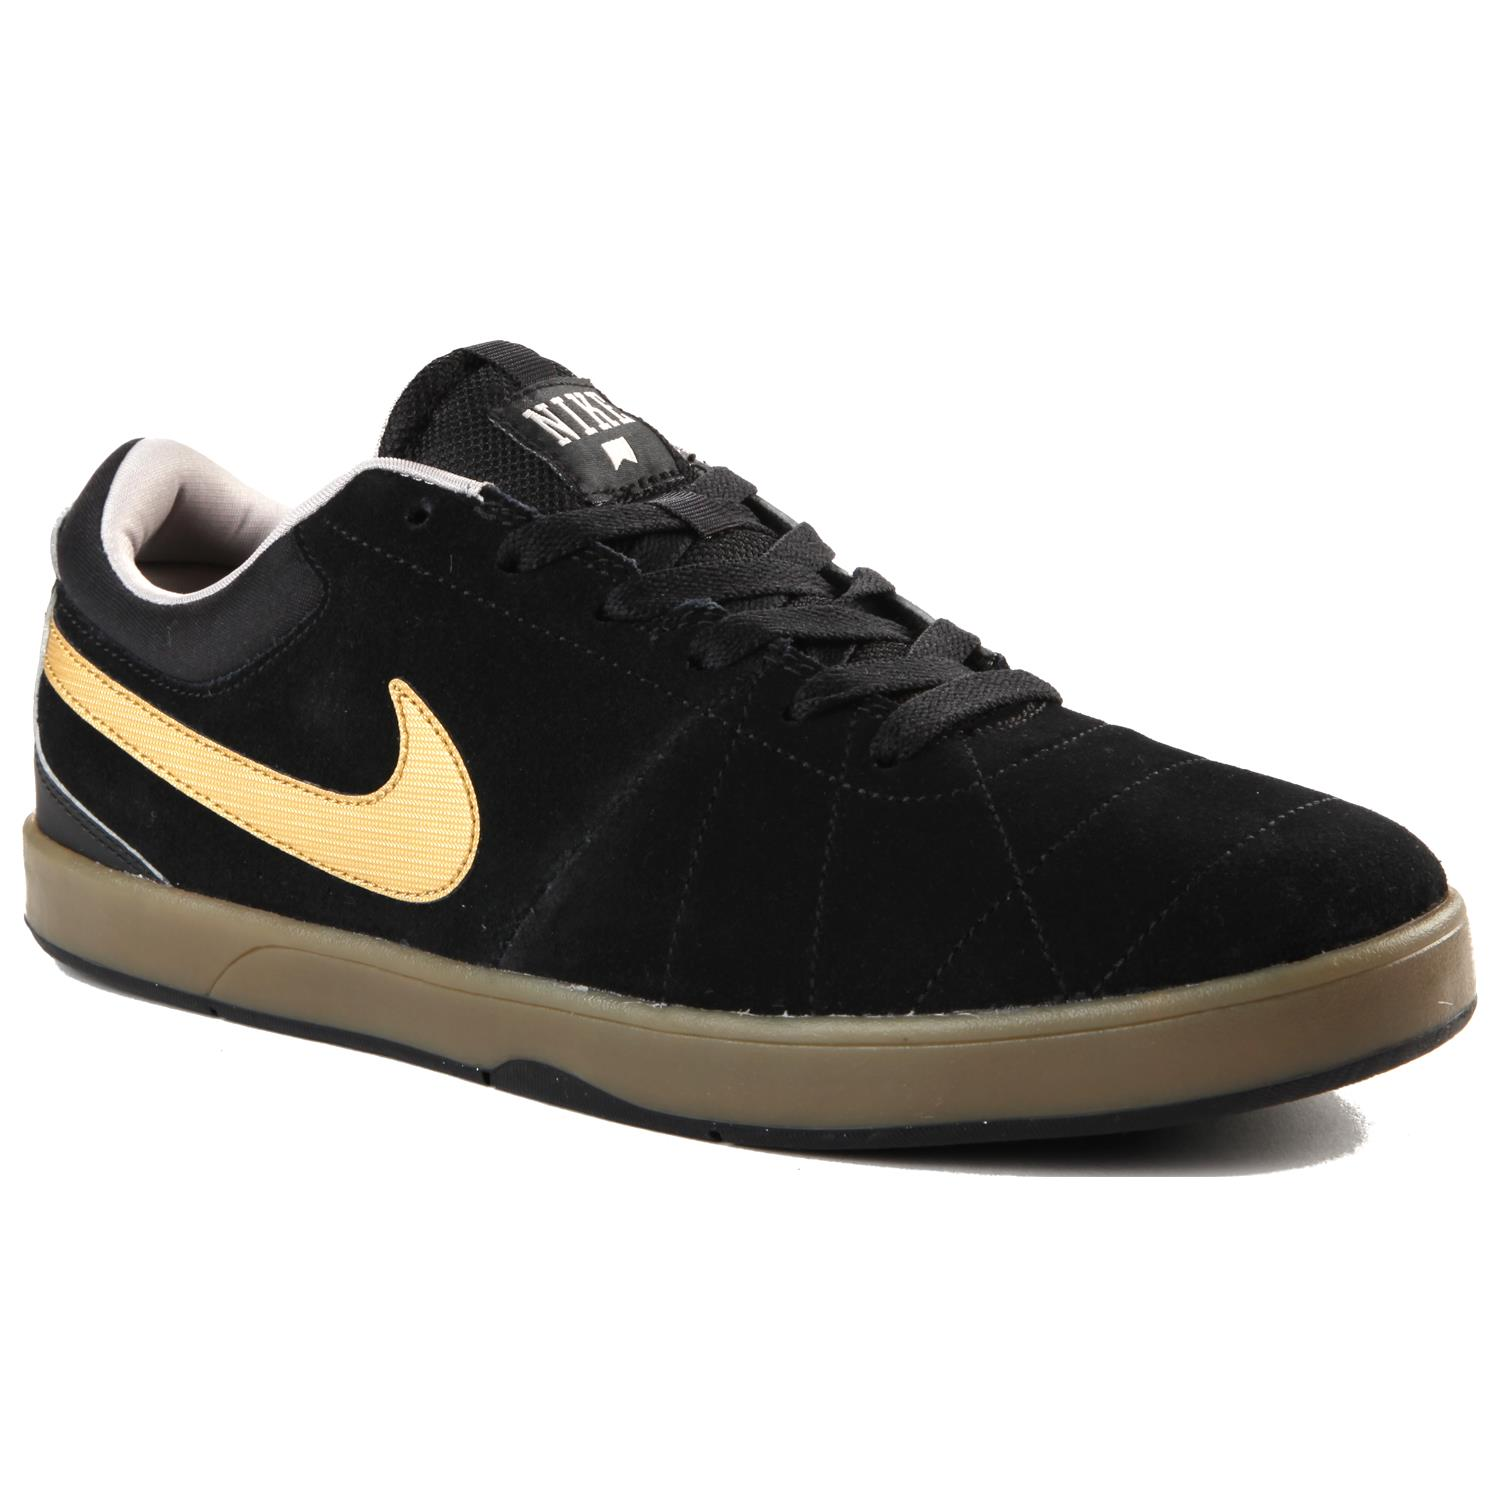 Relindas!!!! | Running shoes nike, Nike shoes outlet, Nike